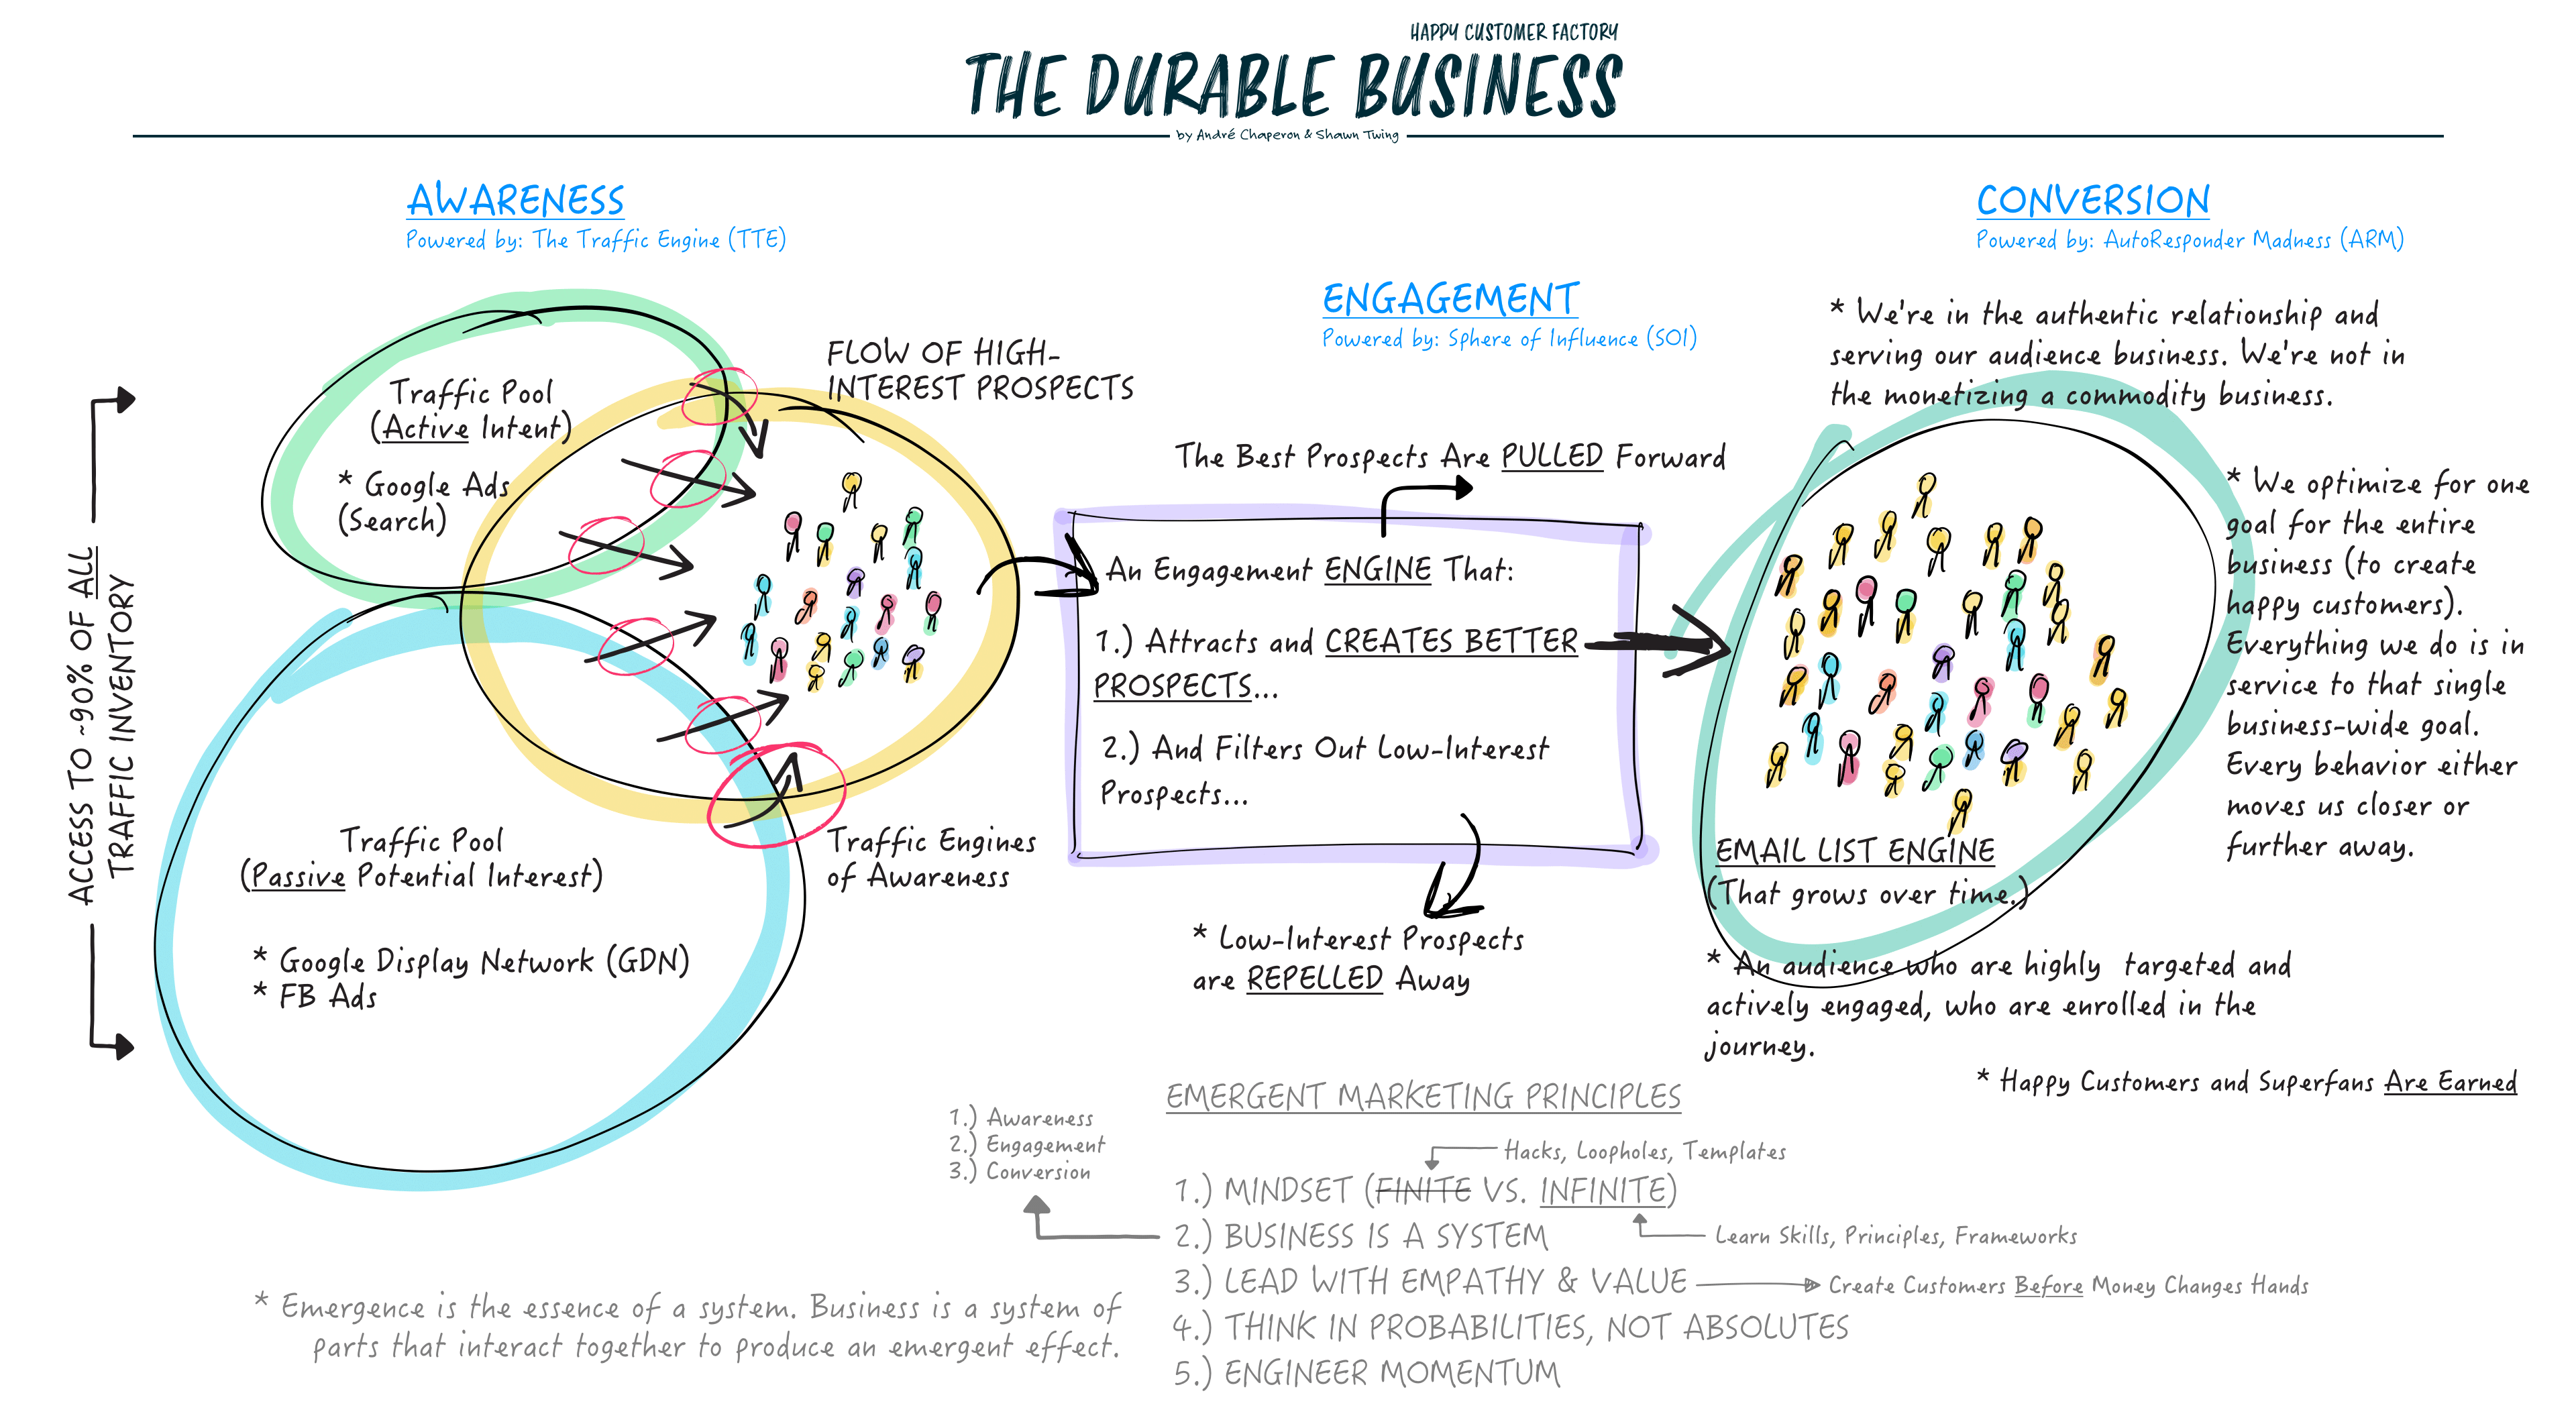 The Durable Business